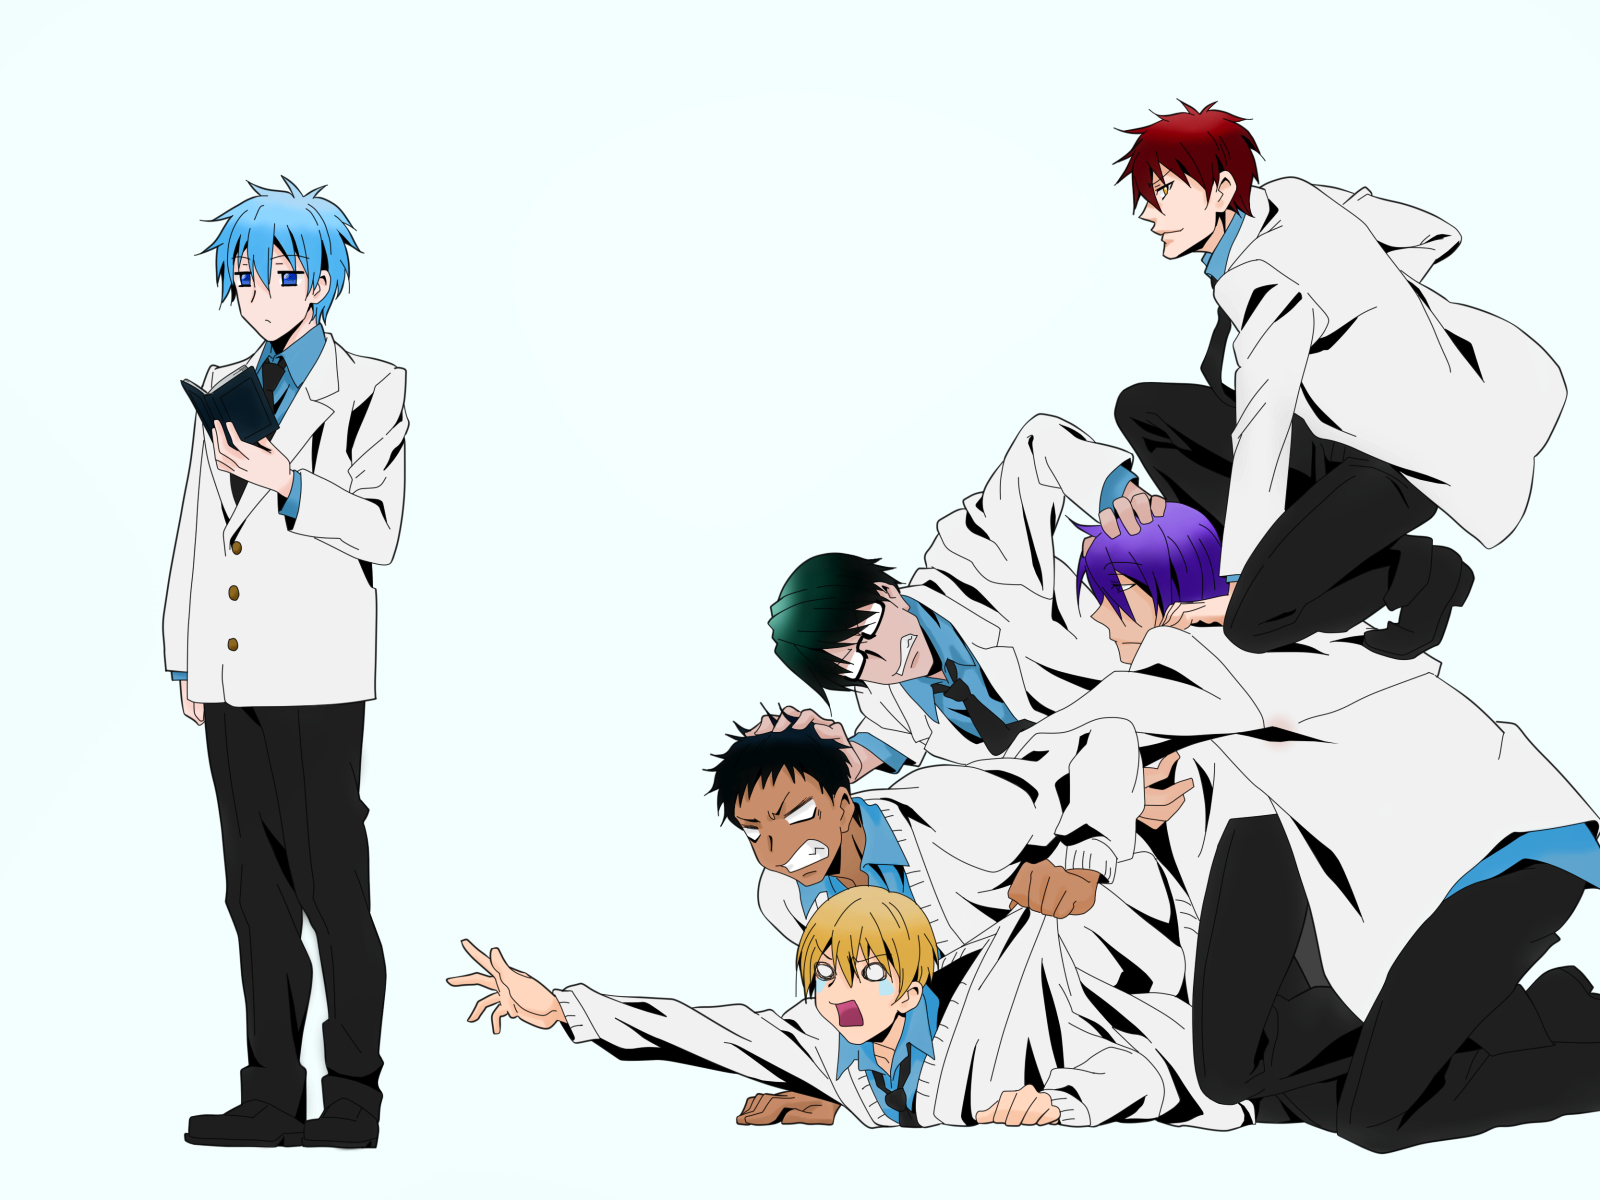 Favorites of Tensai-kun tagged Kuroko no Basket - Zerochan